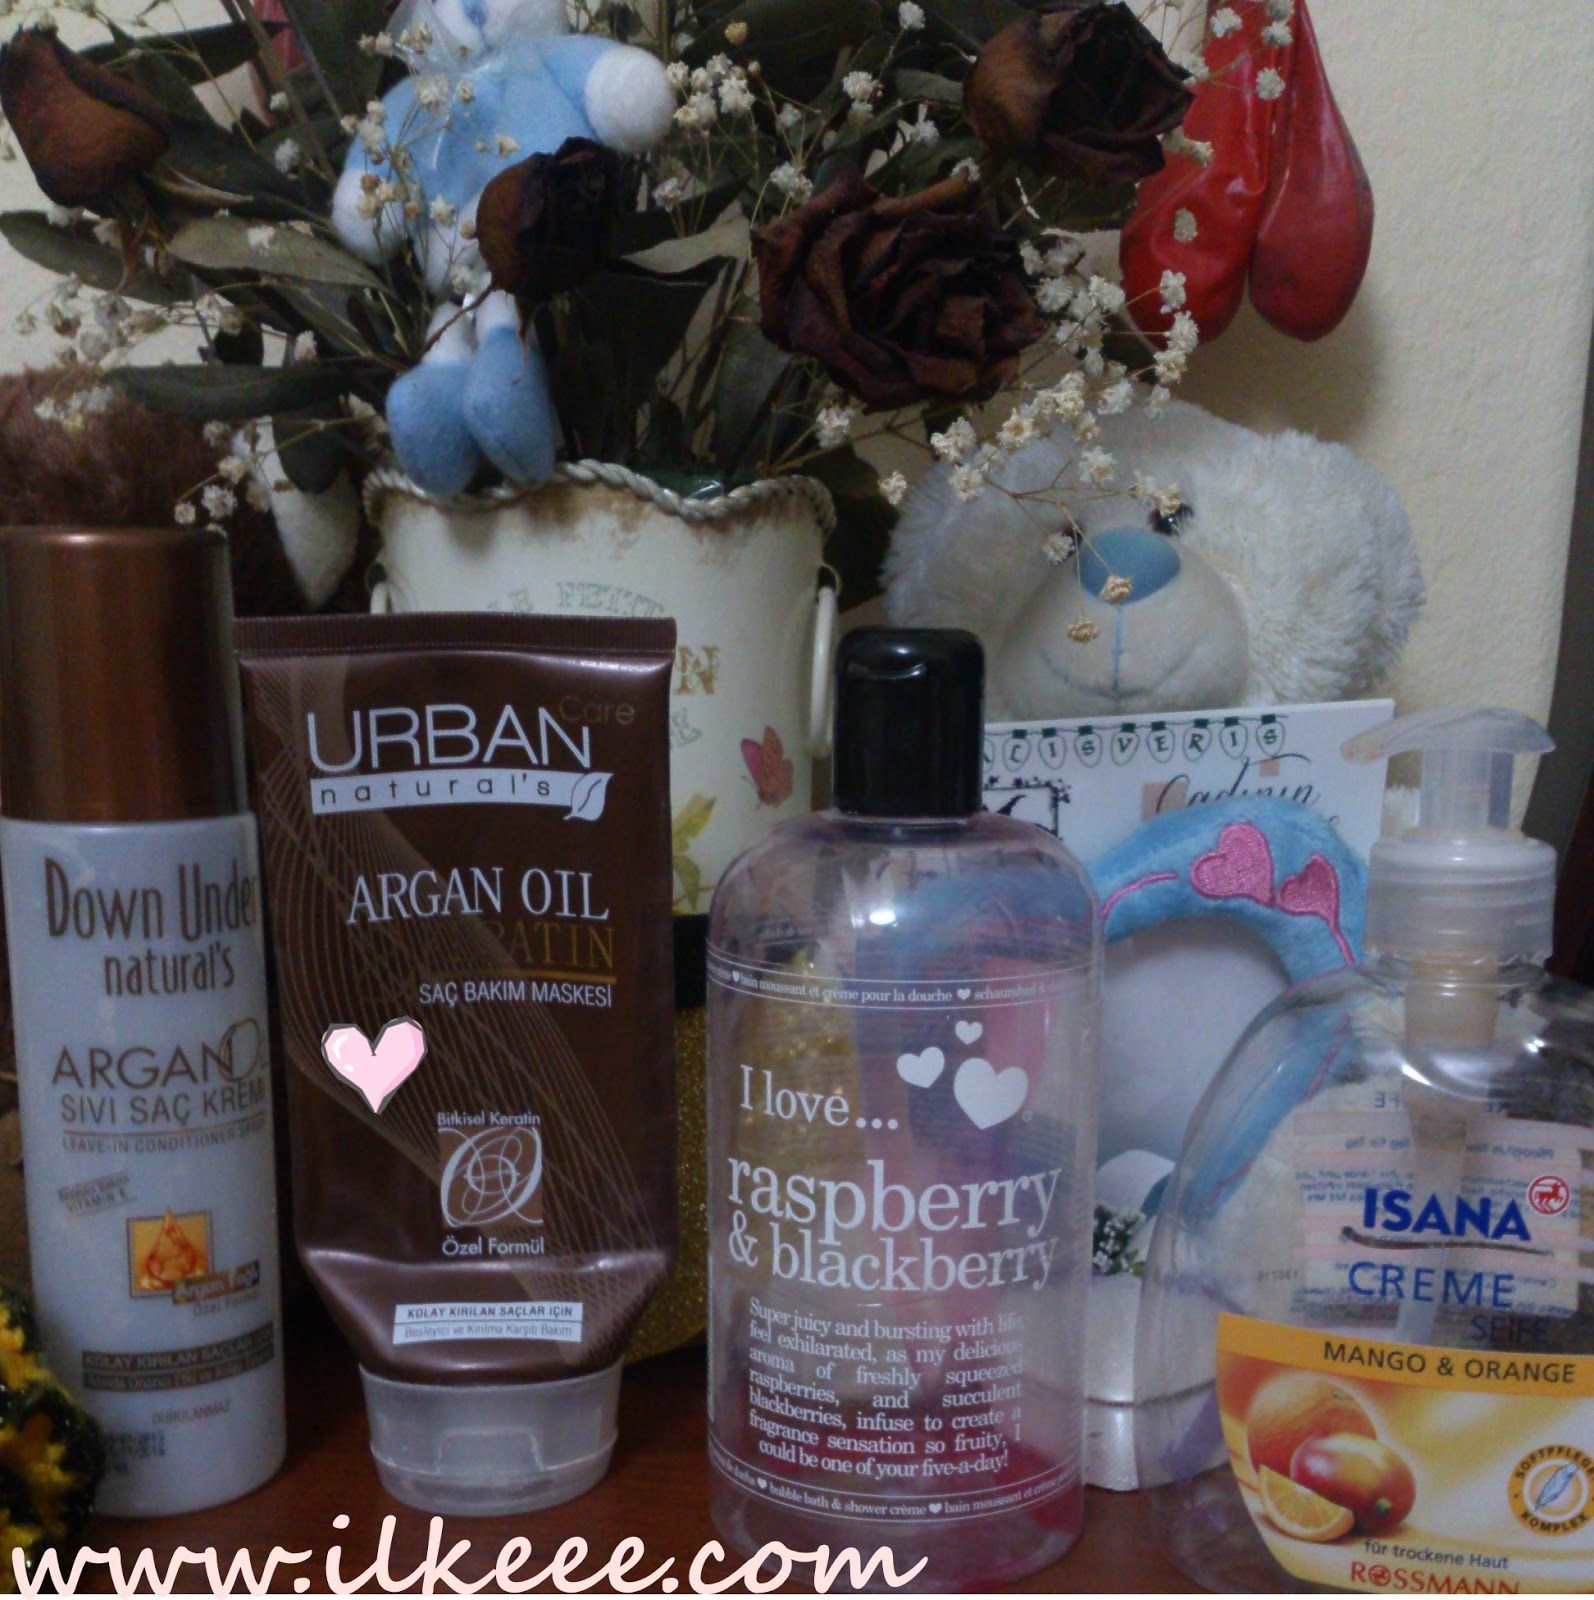 Down Under Argan Oil kullananlar, Selen Kozmetik, Urban Care - Urban Care Argan Oil kullananlar - I love serisi - Isana el kremleri - Watsons I love raspberry